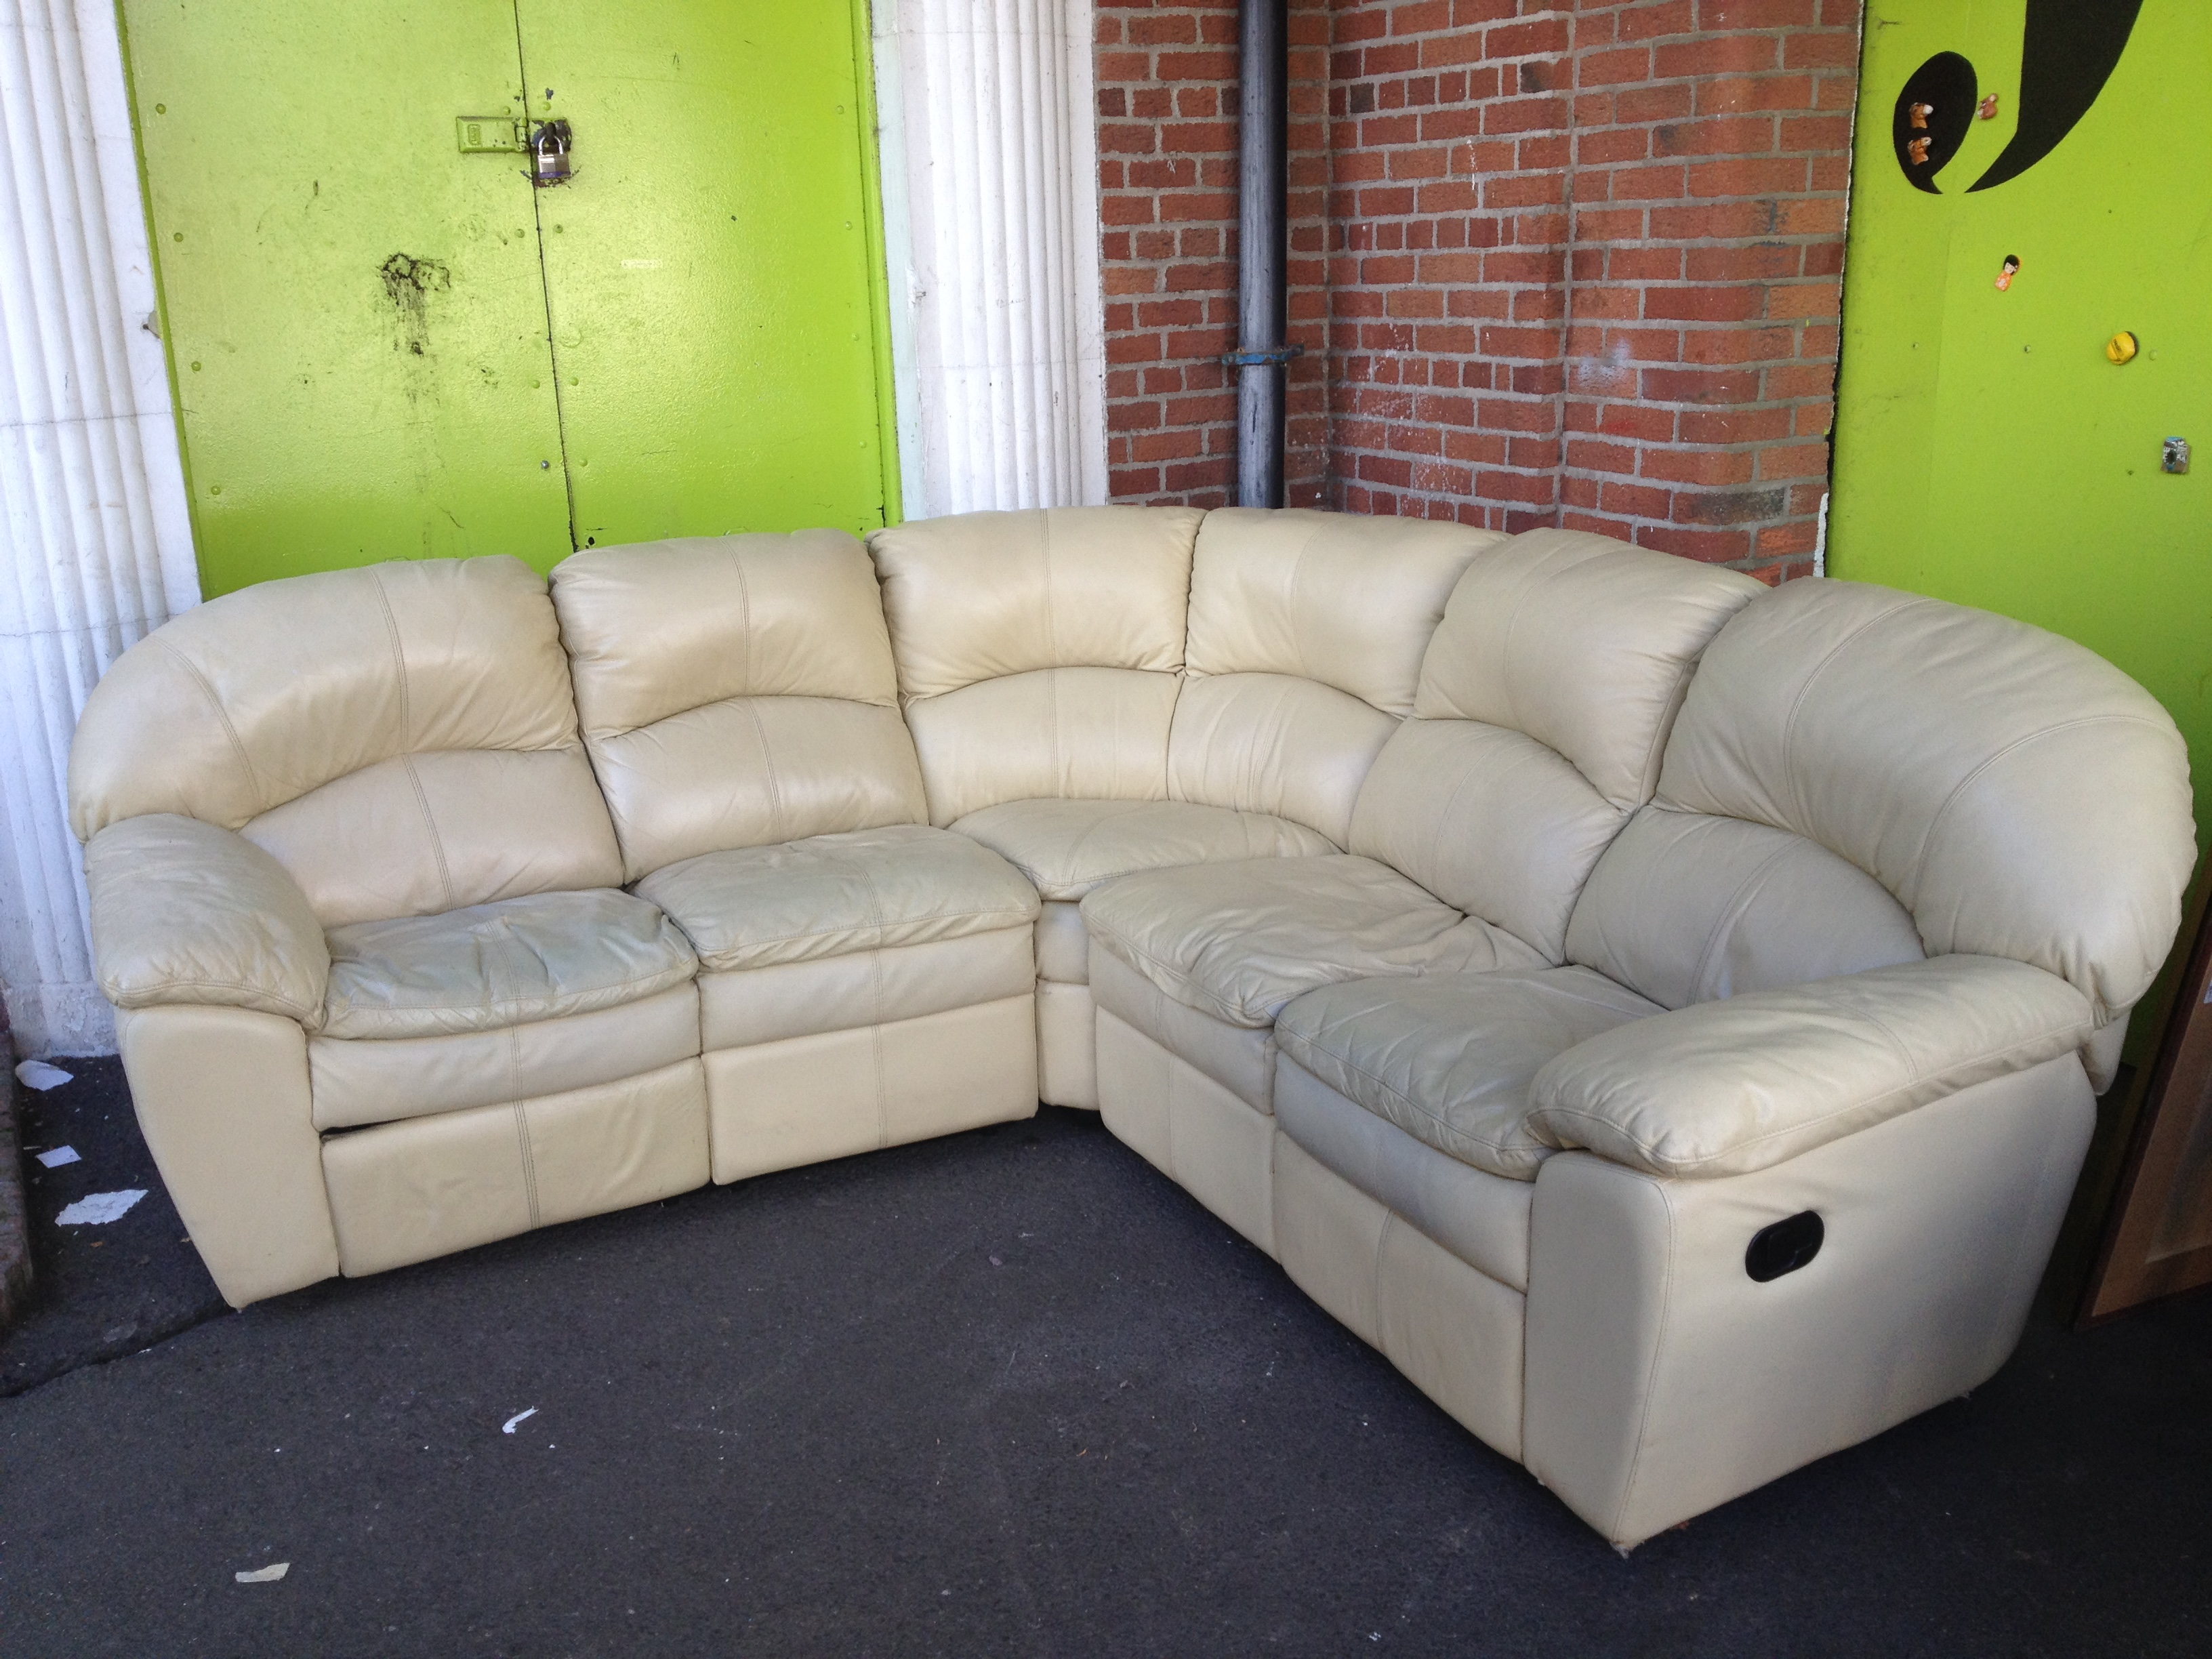 2nd hand sofas for sale buy cheap sofas and couches in for Cheap nice couches for sale